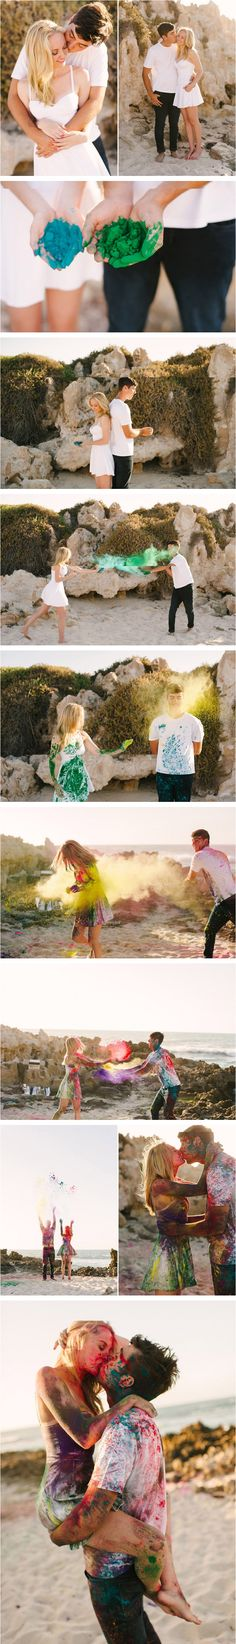 Paint fight engagement shoot. Need I say more?!?!